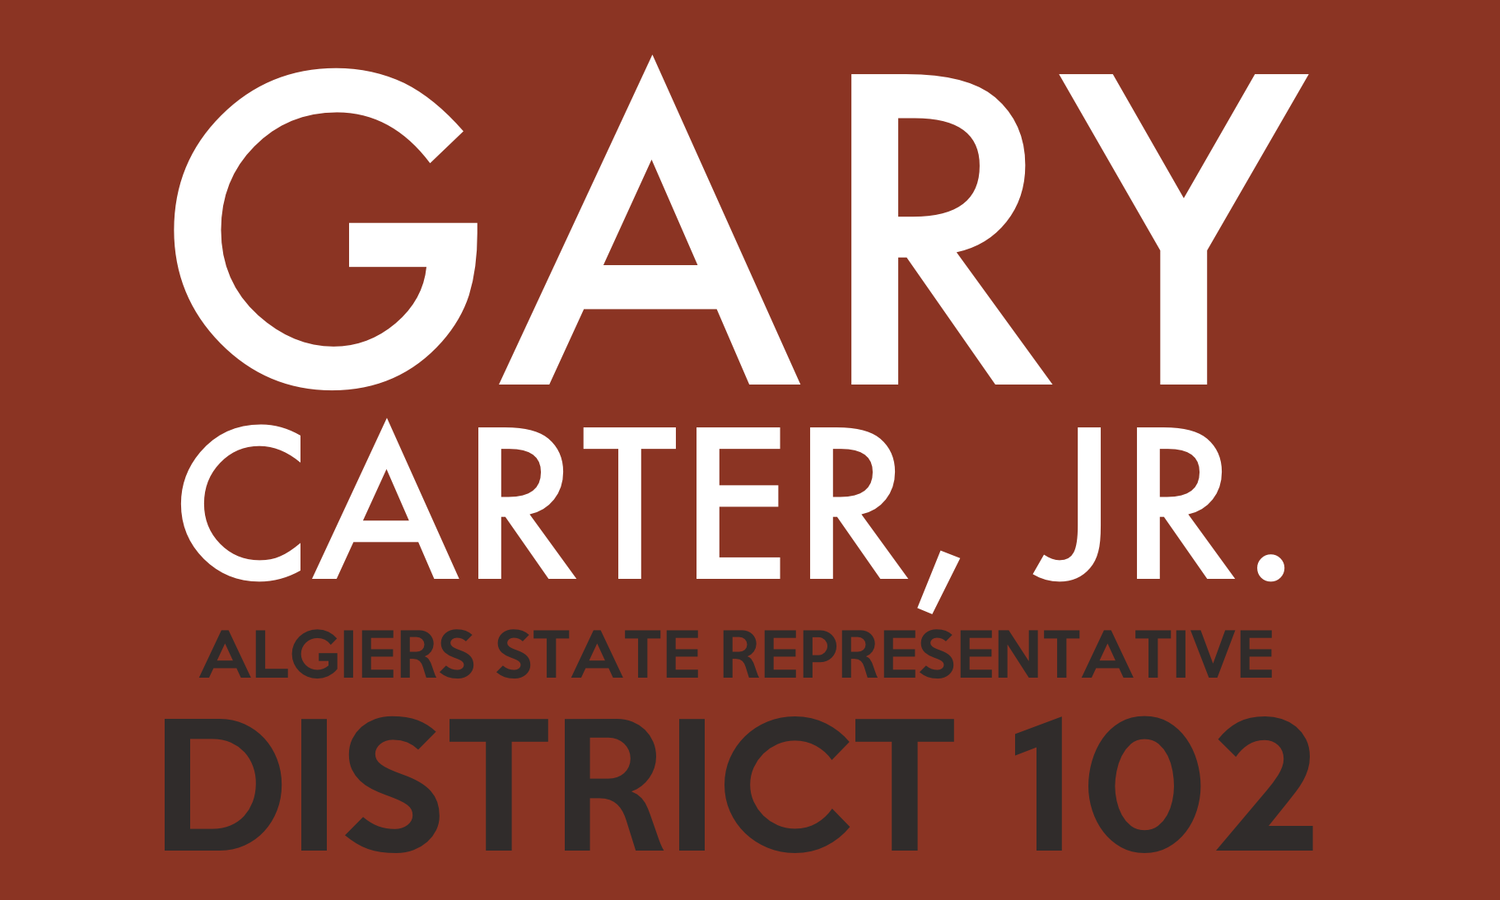 Representative Gary Carter, Jr.